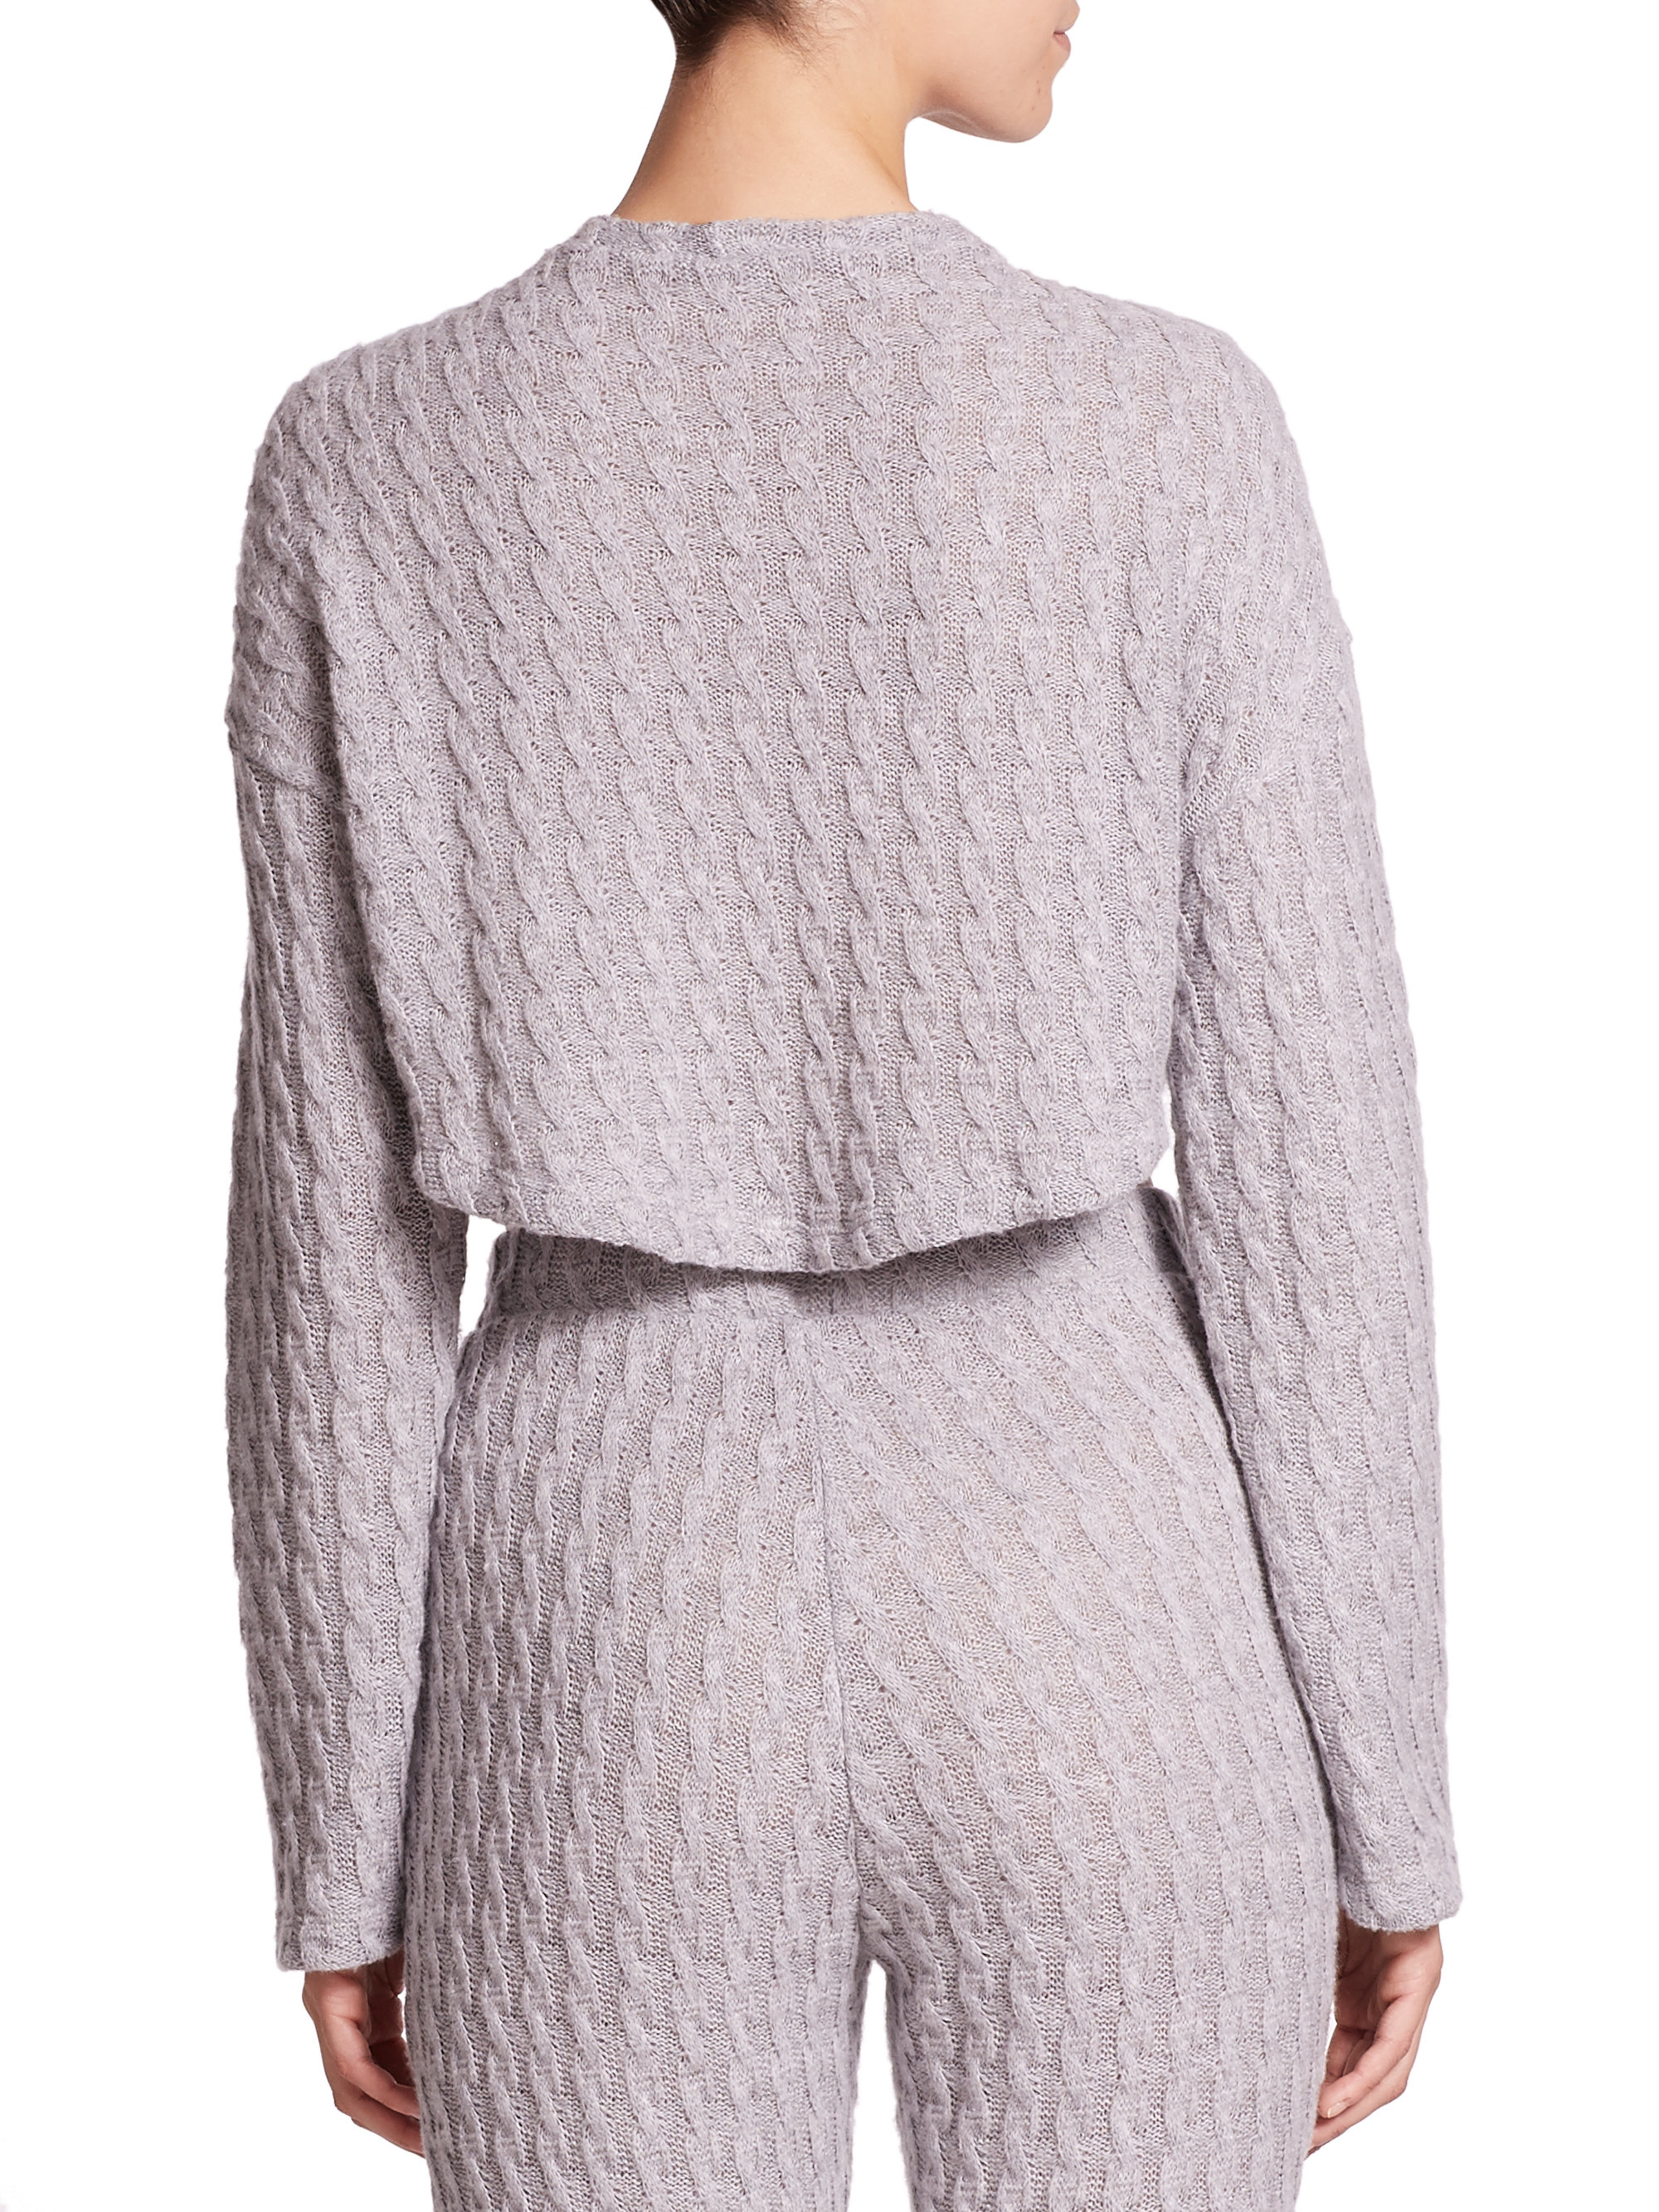 Csbla Jasmin Cropped Cable-knit Sweater in Gray   Lyst